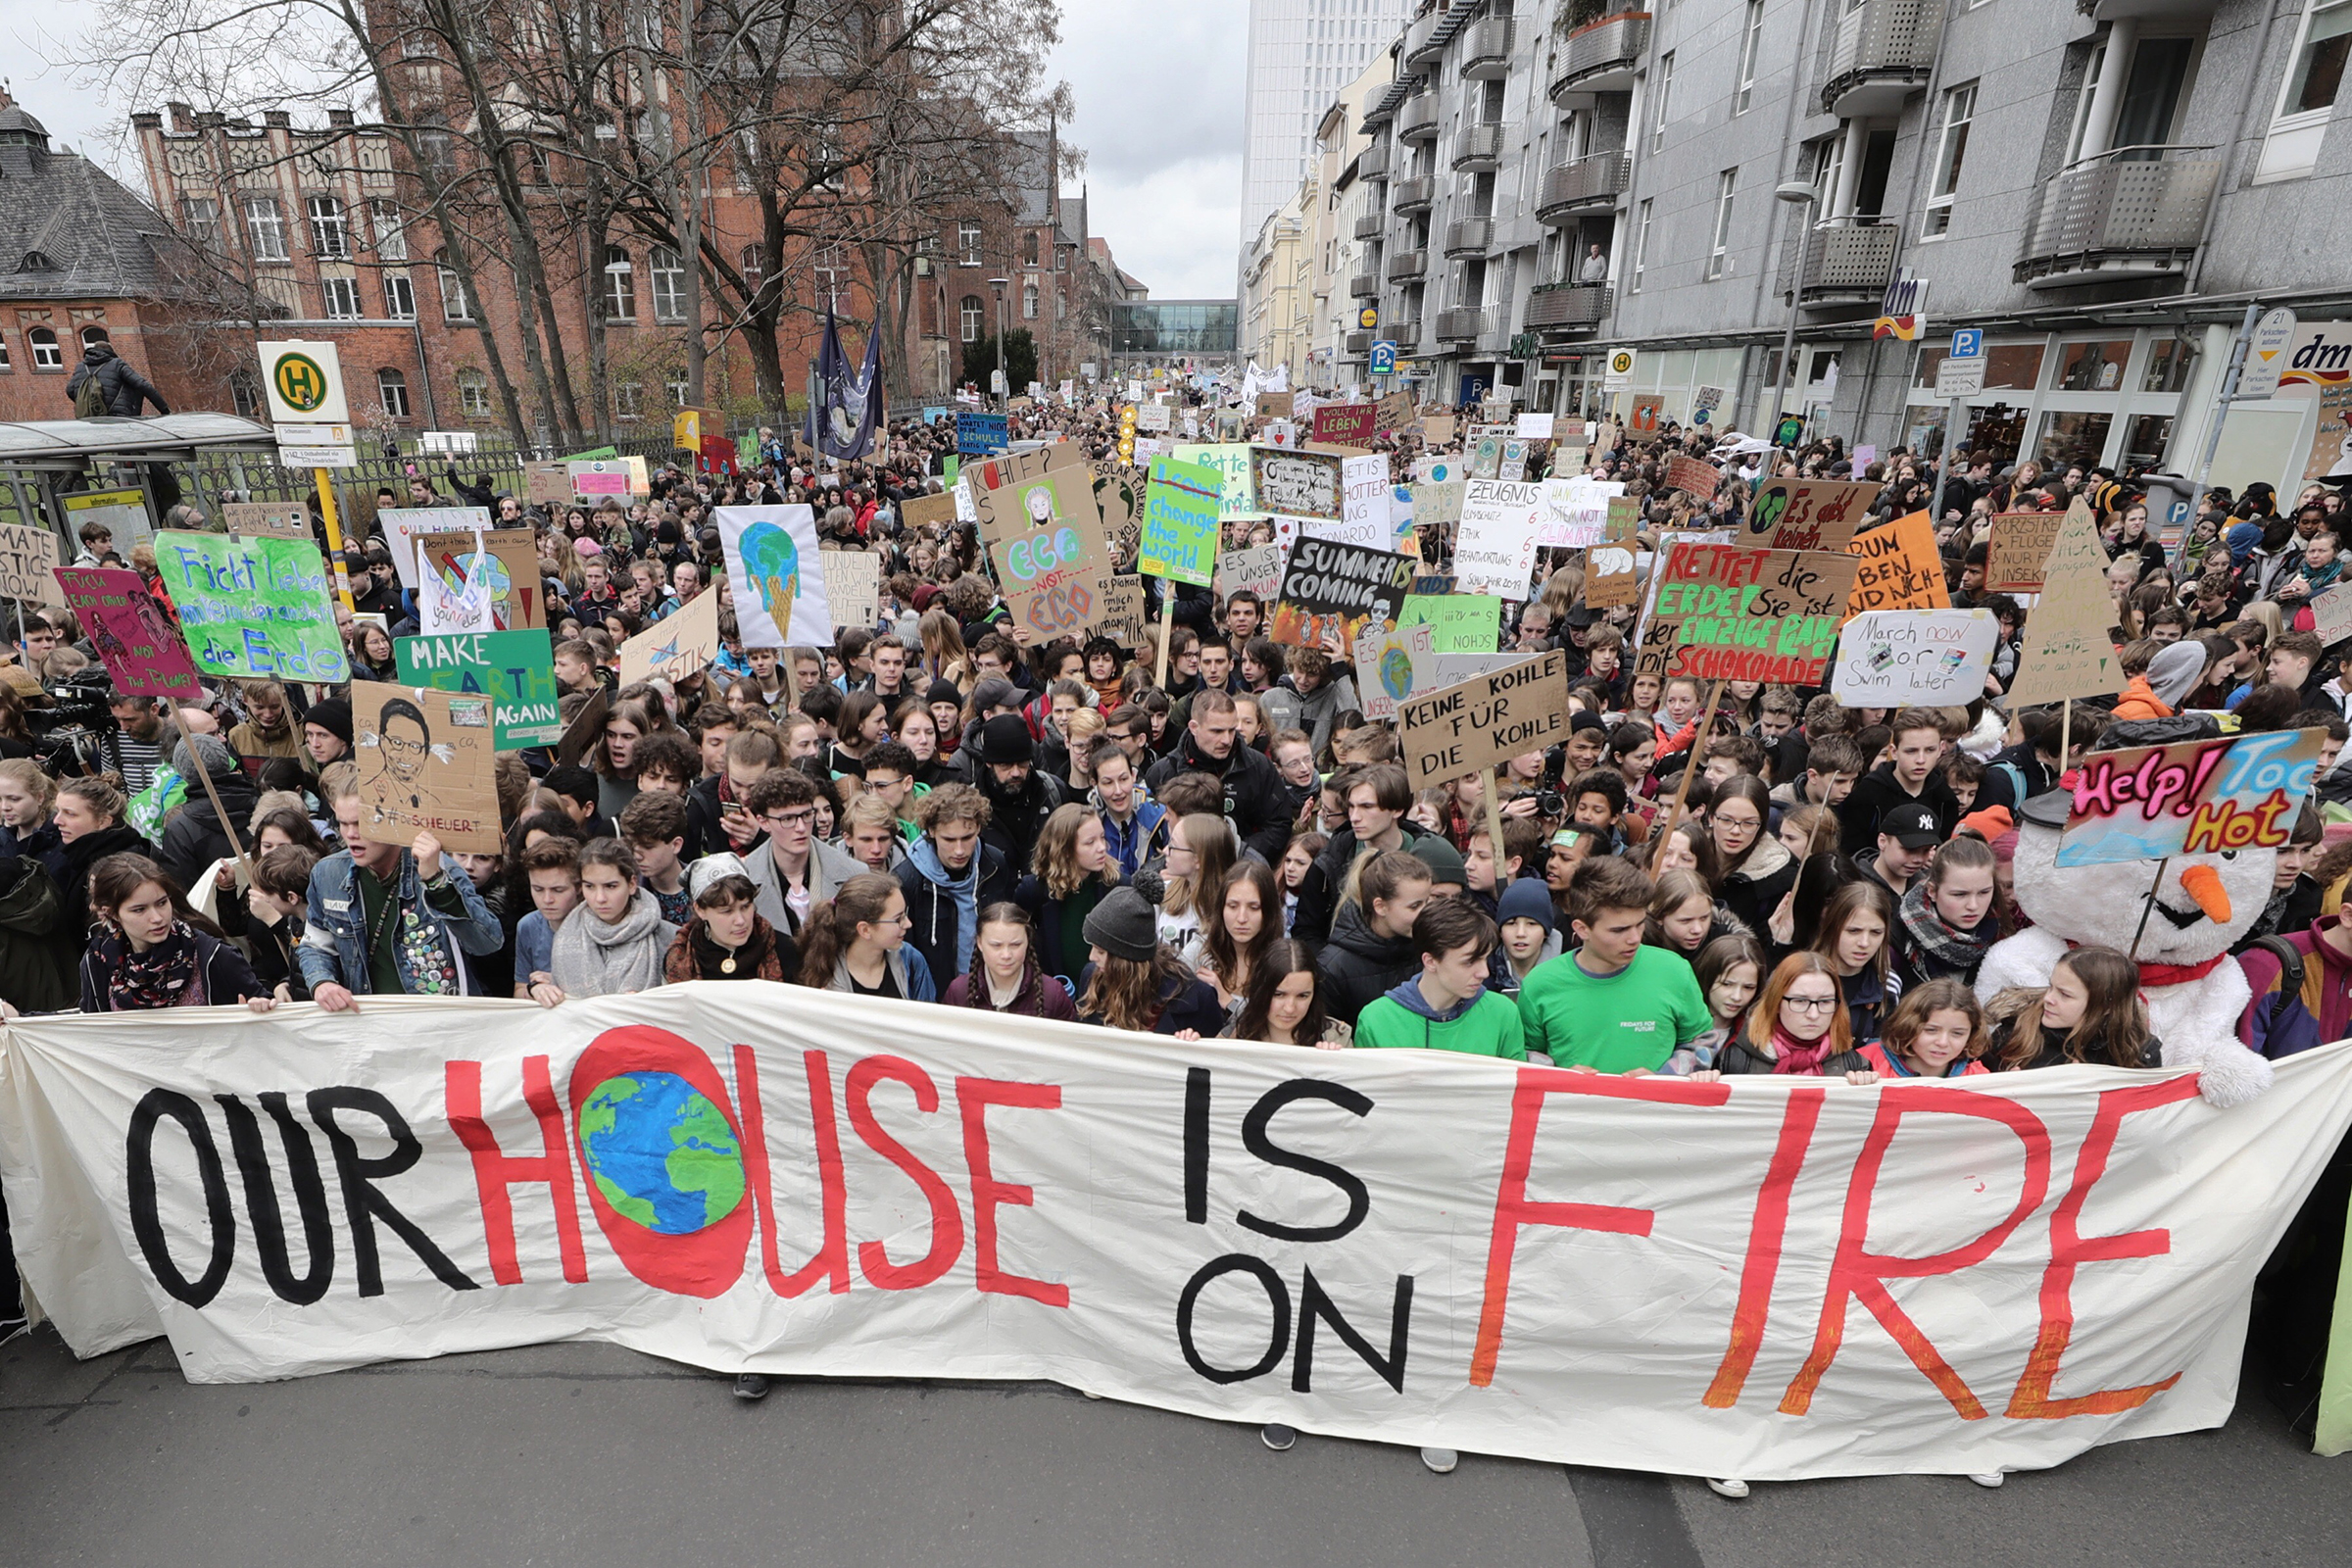 Greta Thunberg at a  Fridays for Future  climate demonstration on March 29, 2019 in Berlin, Germany.